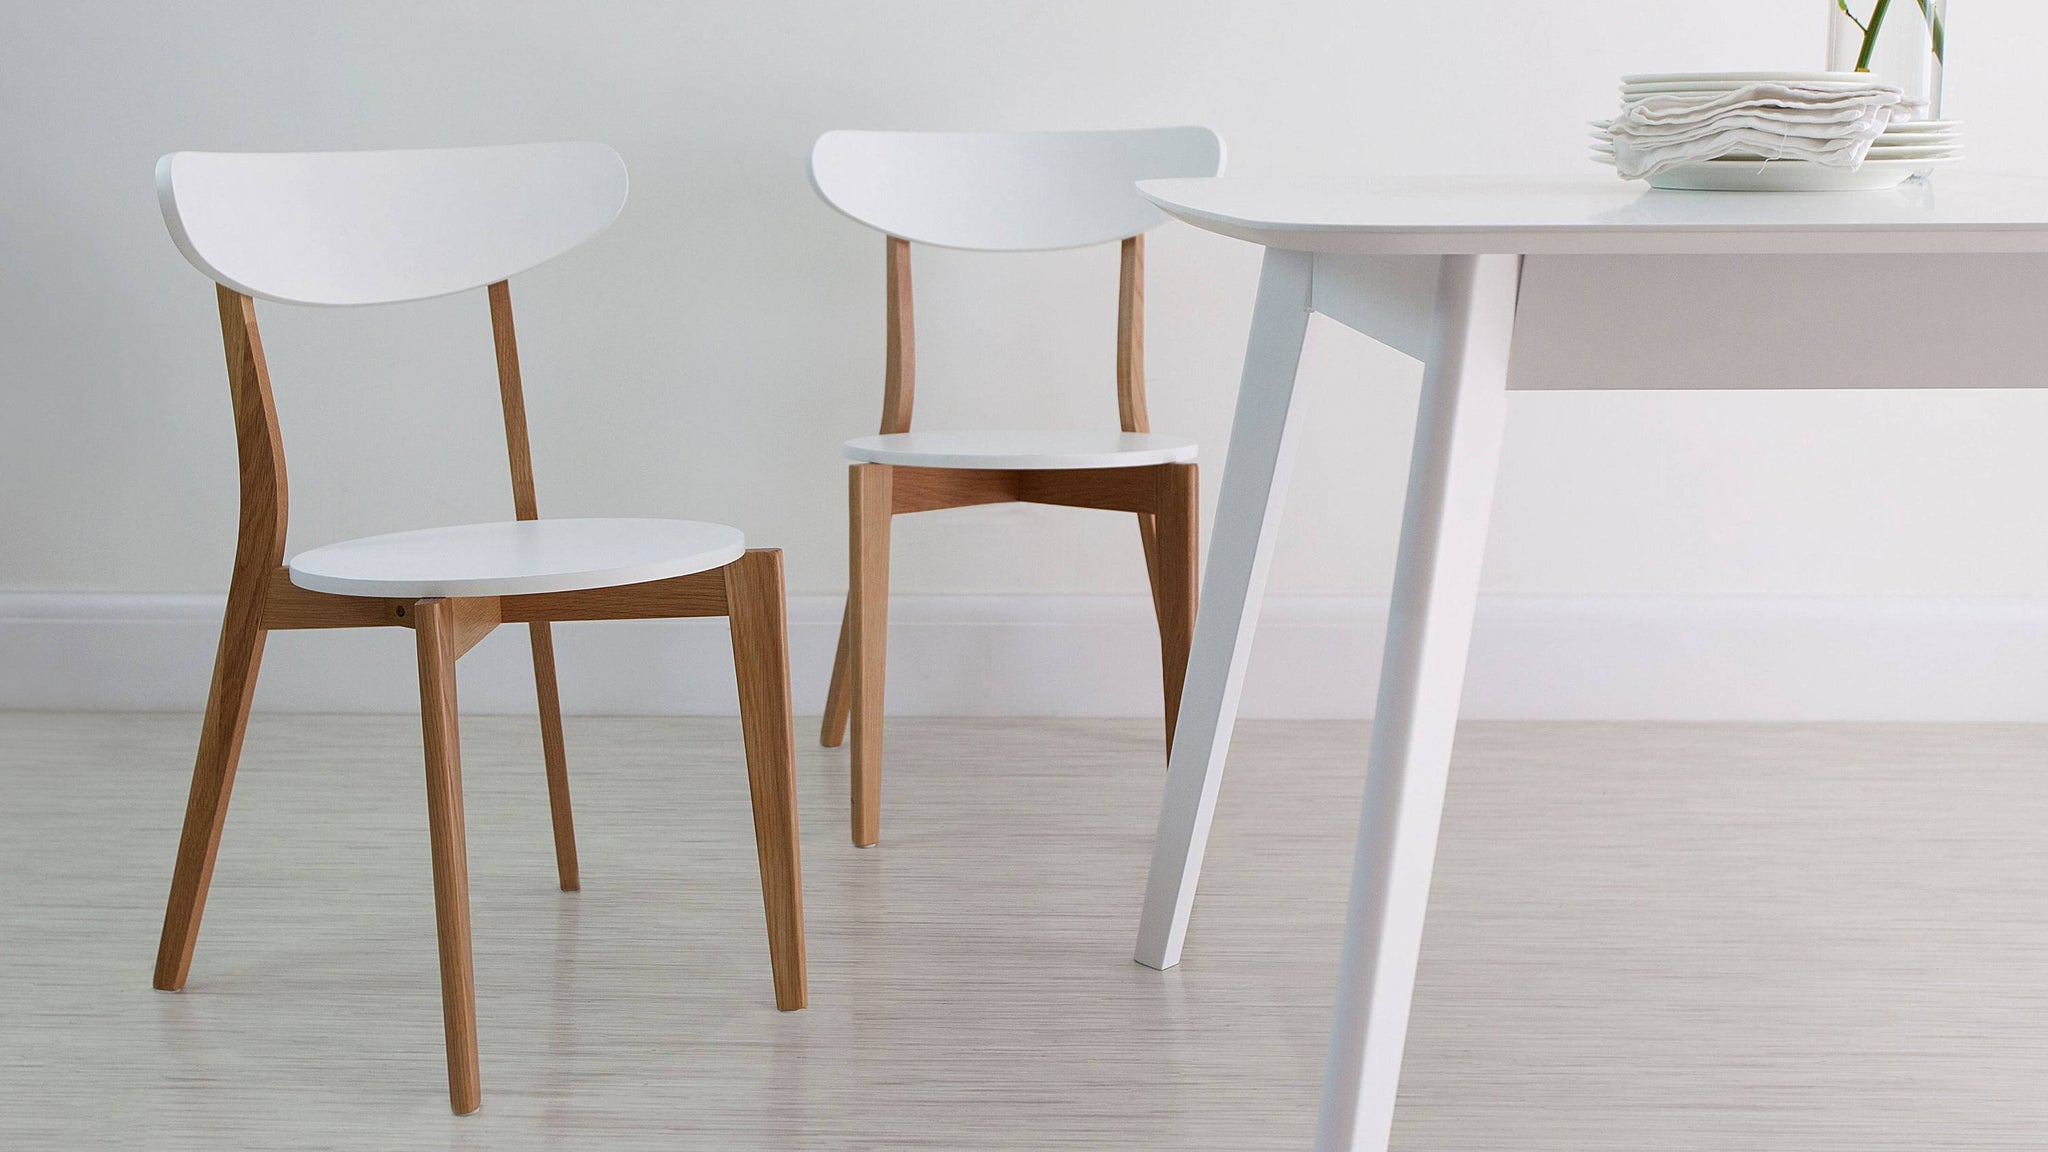 Affordable durable Oak and White Dining Chair